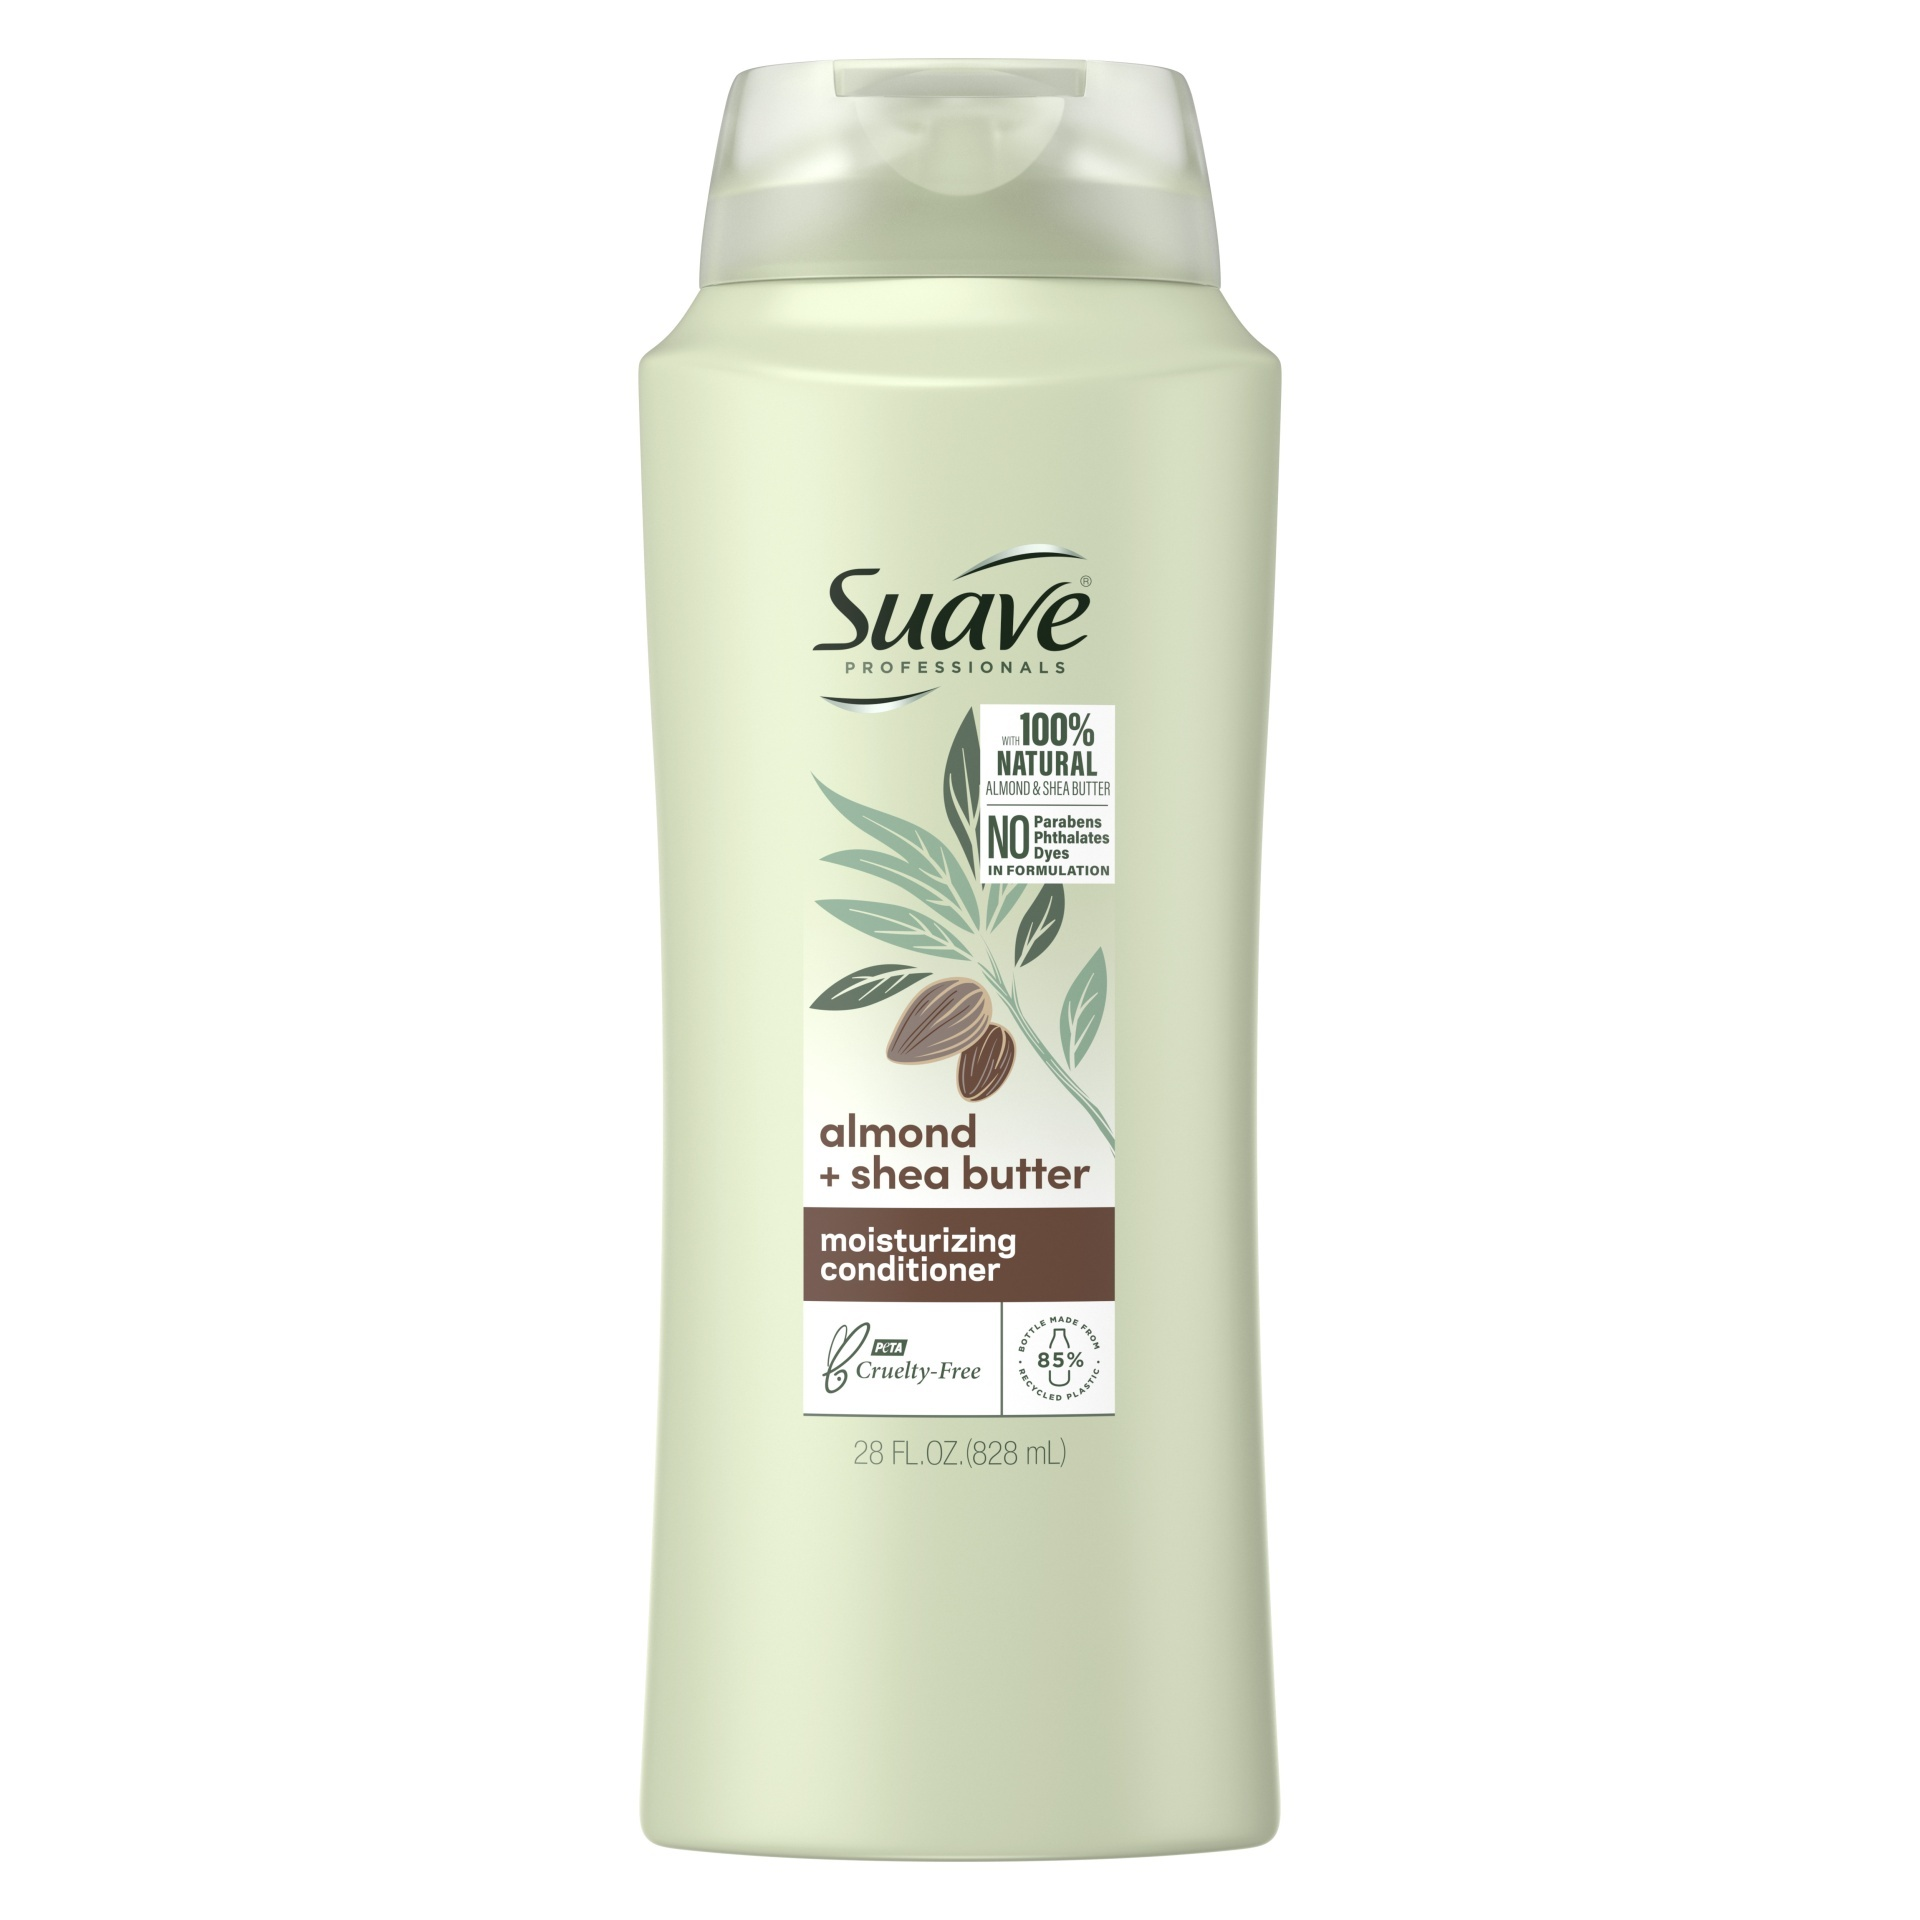 slide 1 of 3, Suave Professionals Almond and Shea Butter Moisturizing Conditioner,